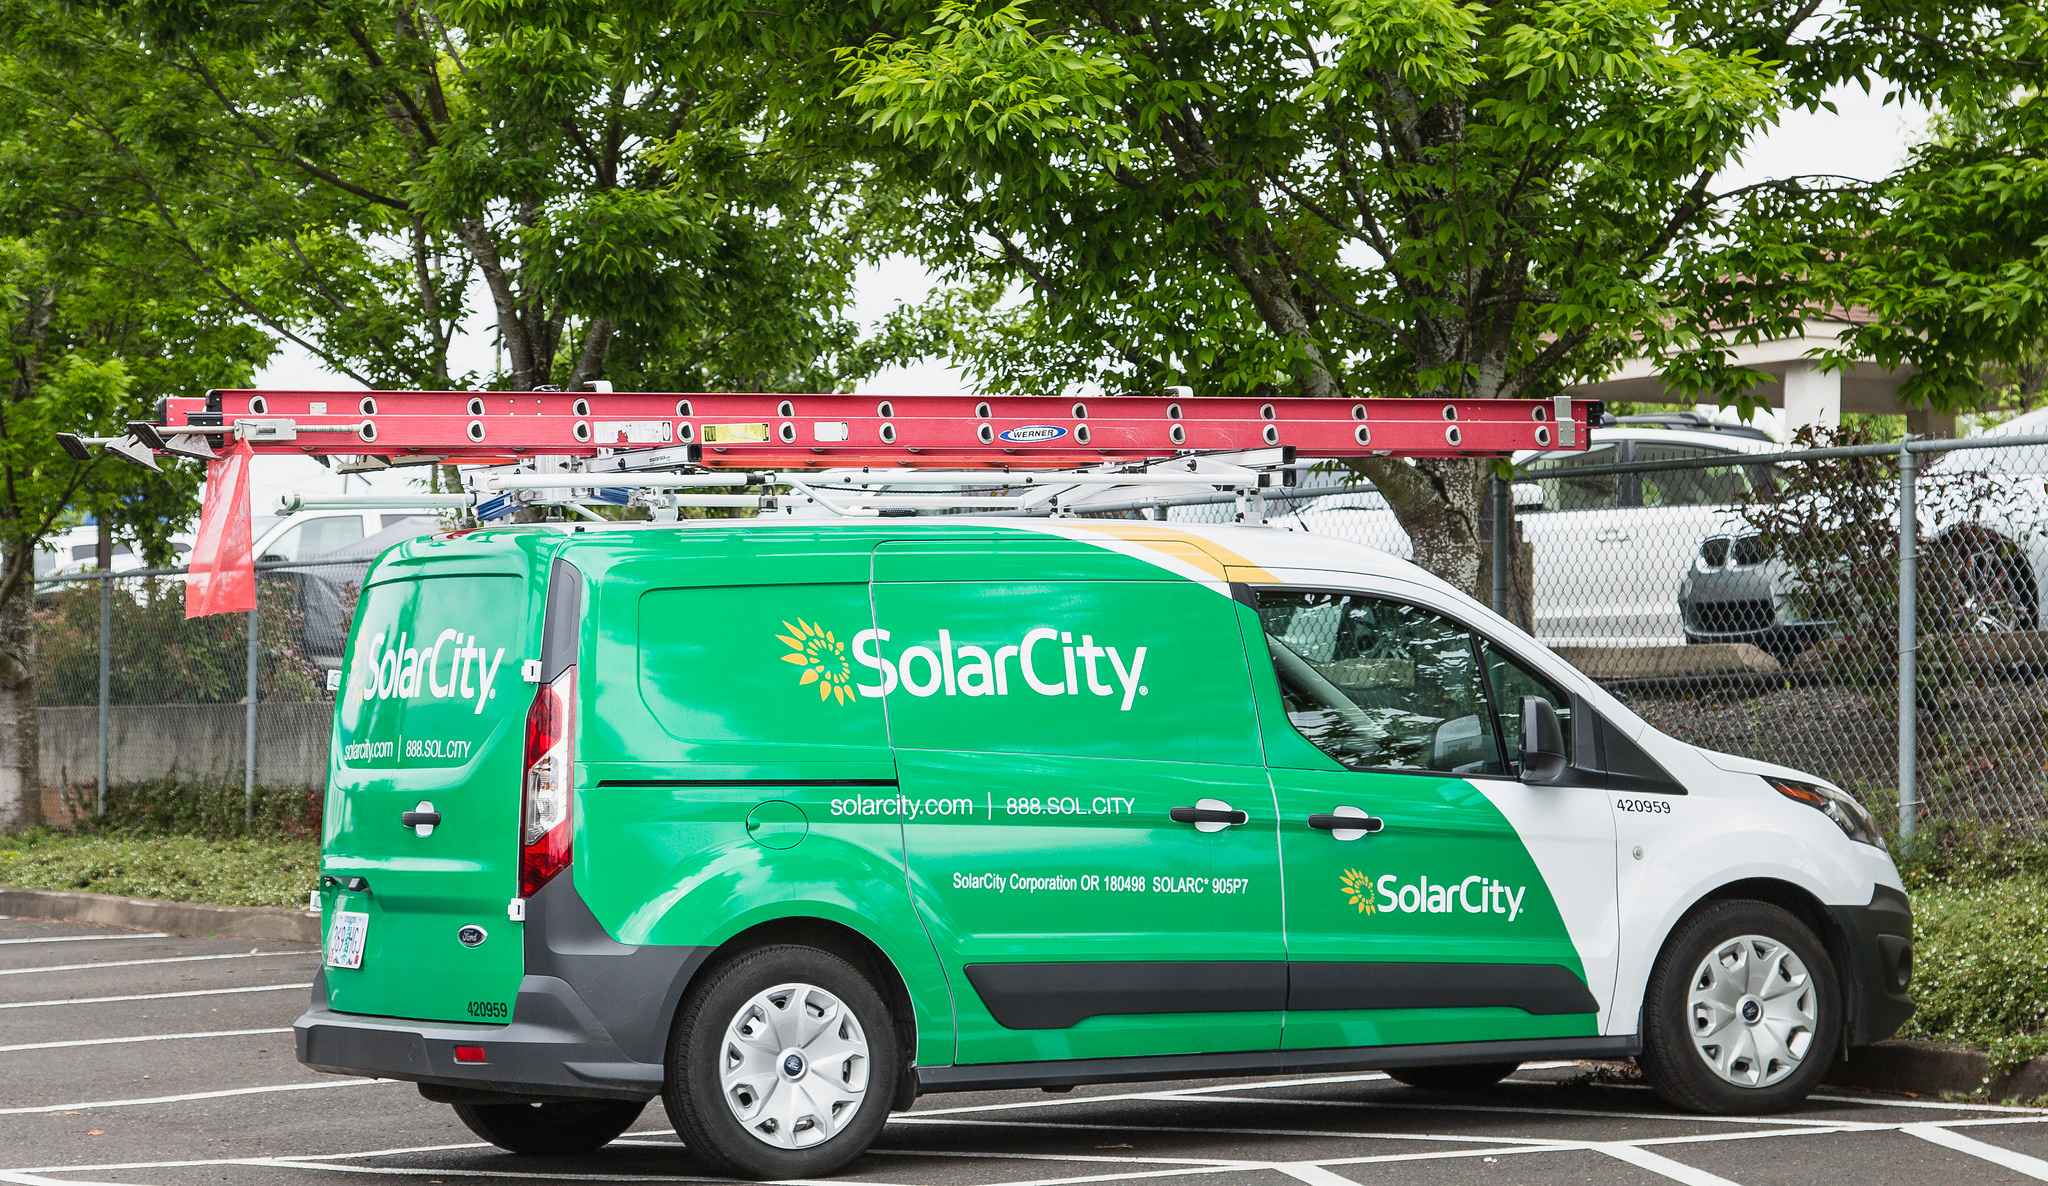 problems-with-solarcity-install-van